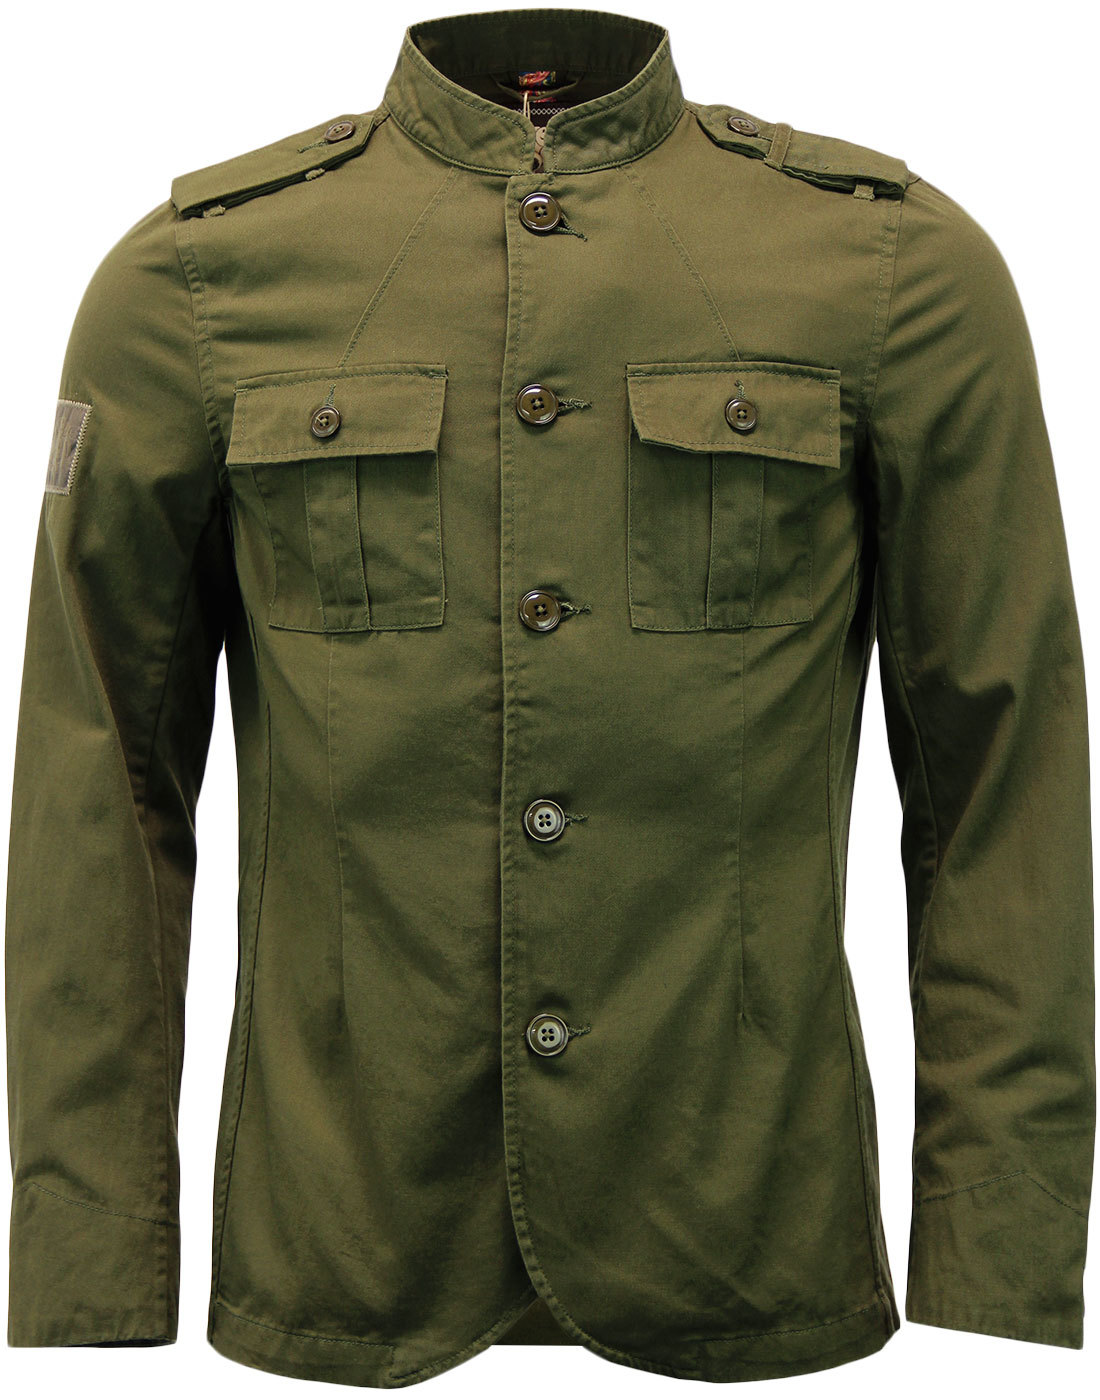 Cotton Lennon PRETTY GREEN 60s Mod Military Jacket